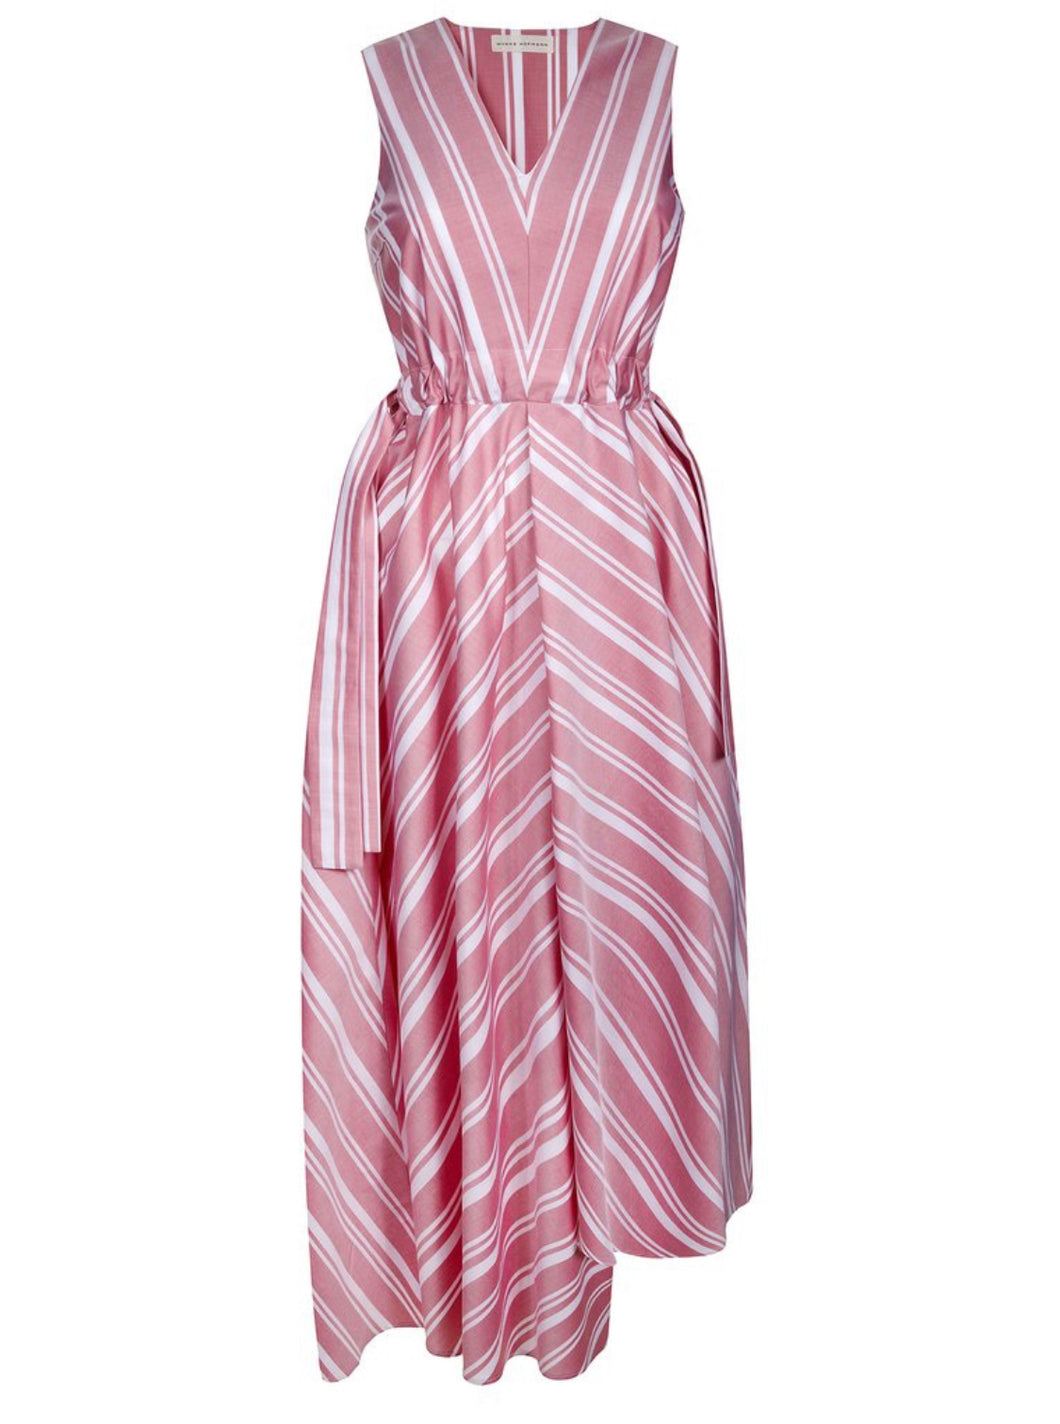 Graphic stripe dress Kaye